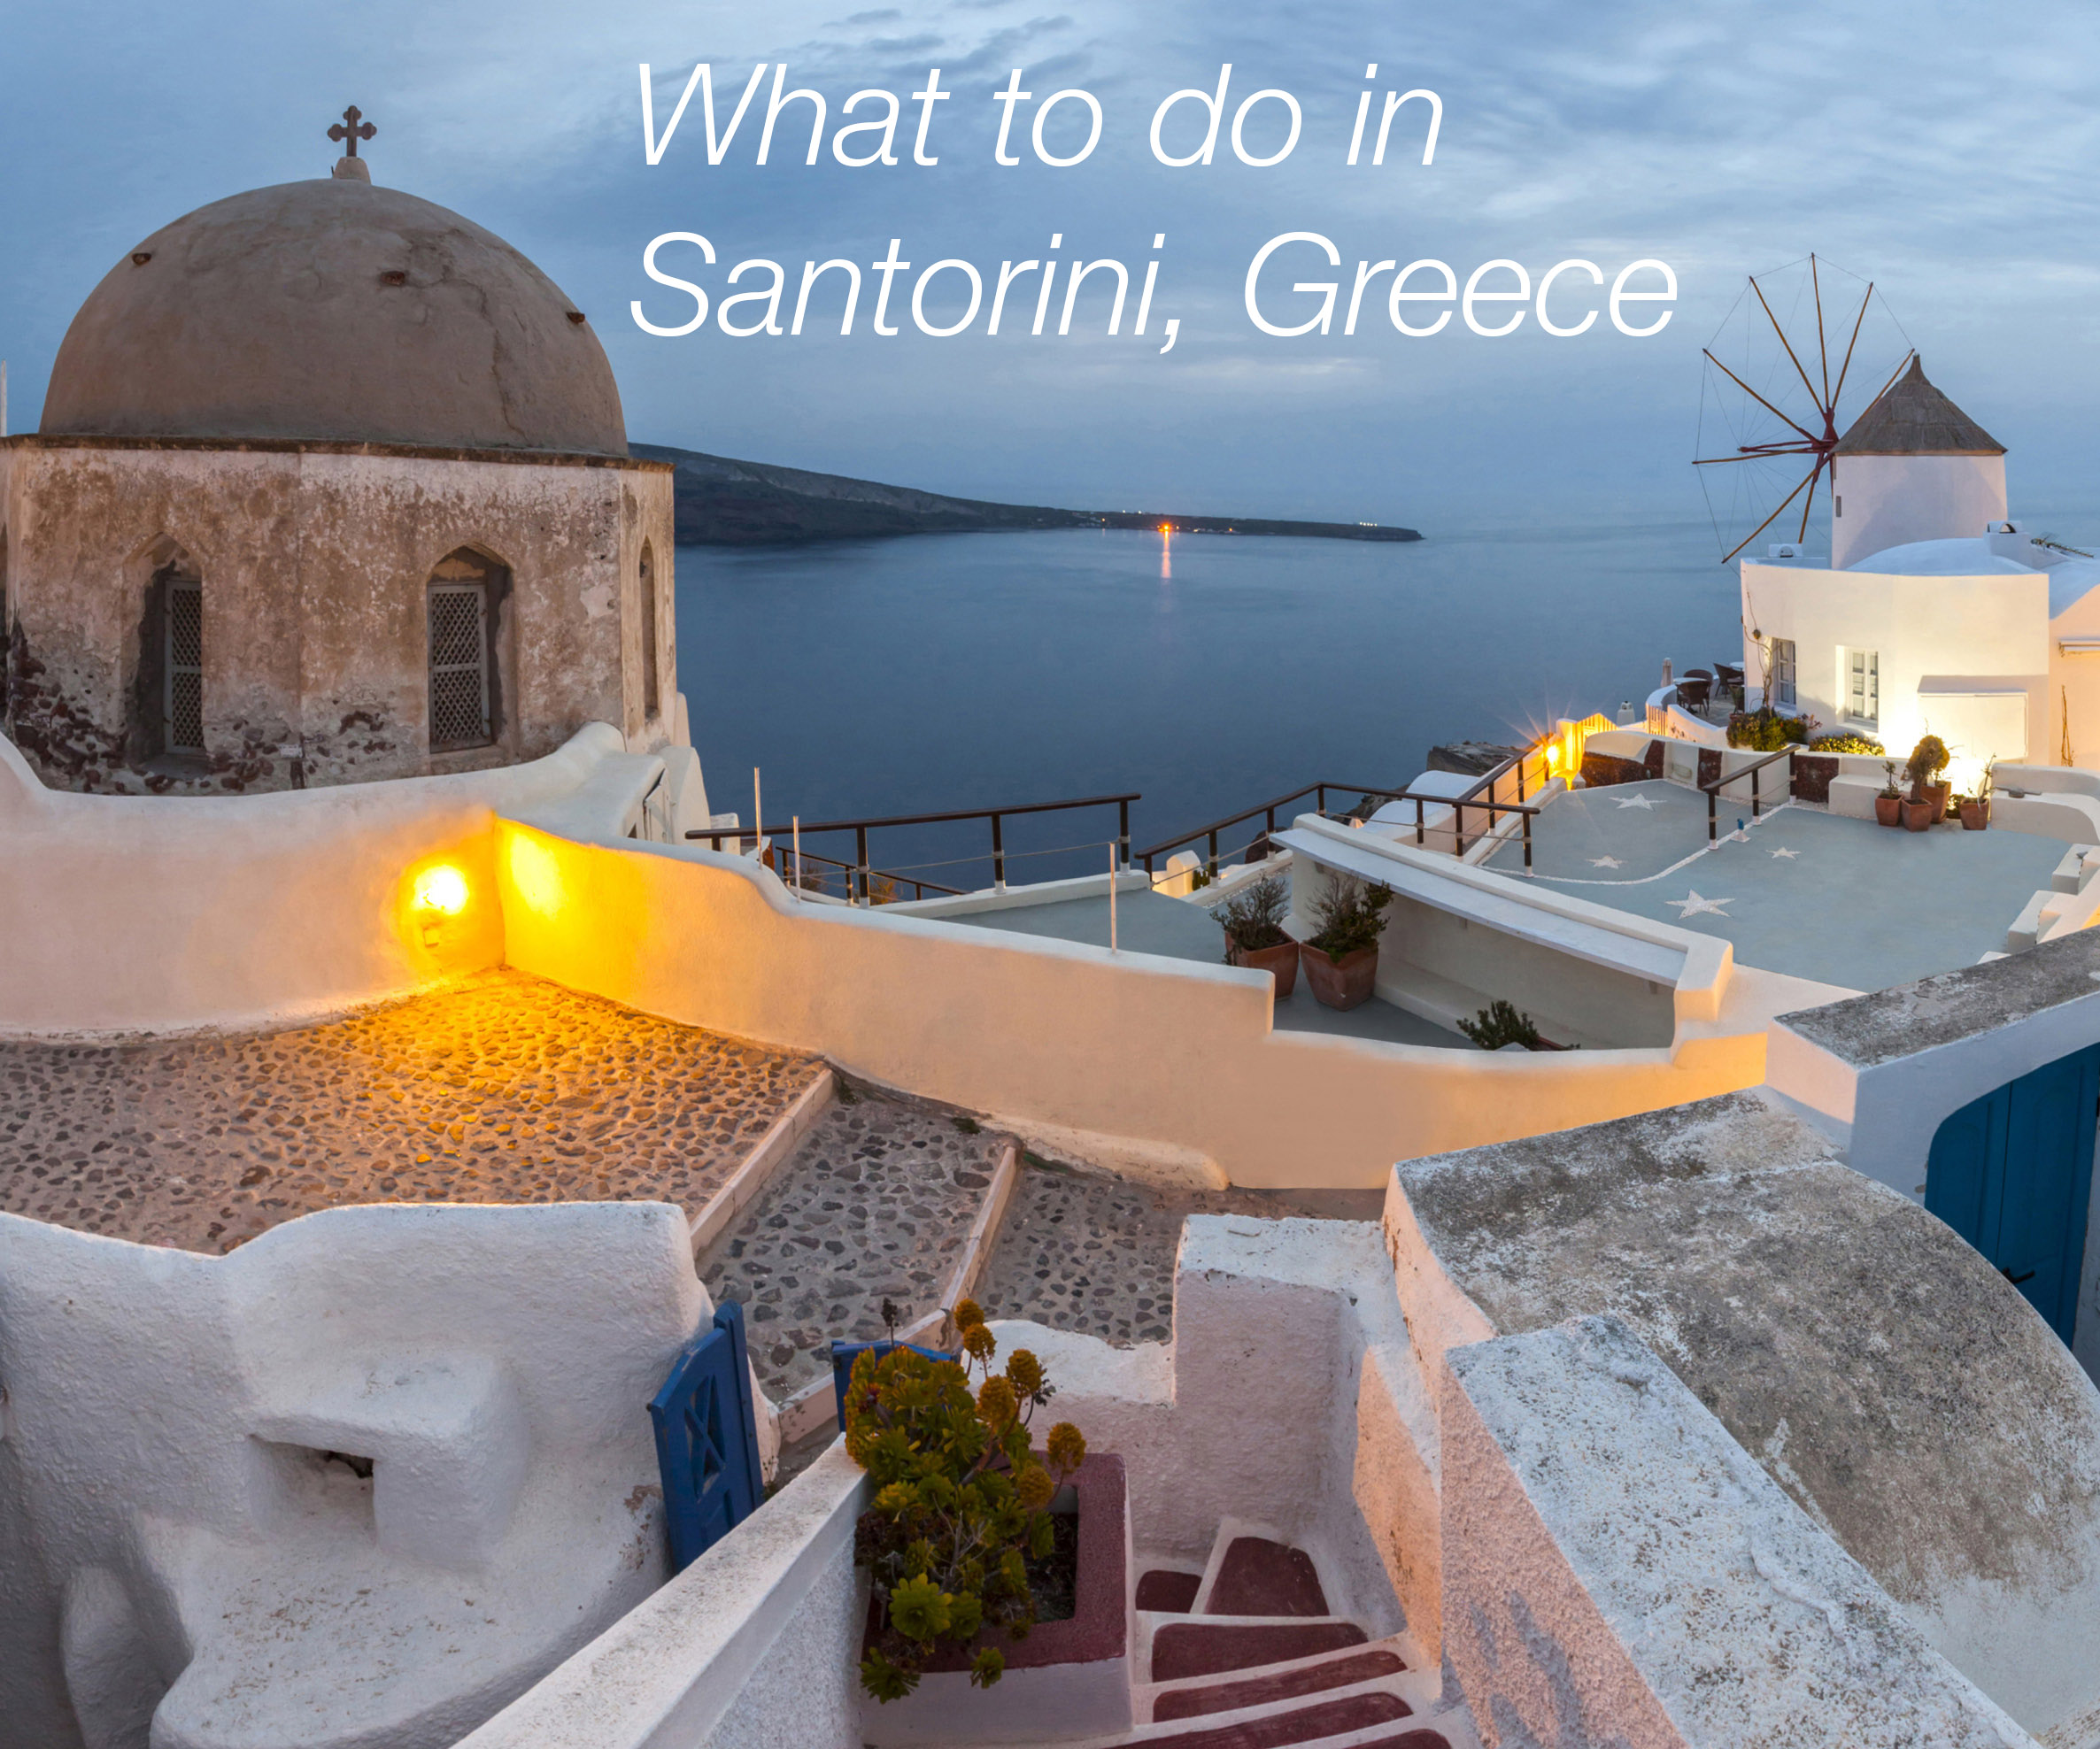 8 Best Things To Do In Santorini Greece